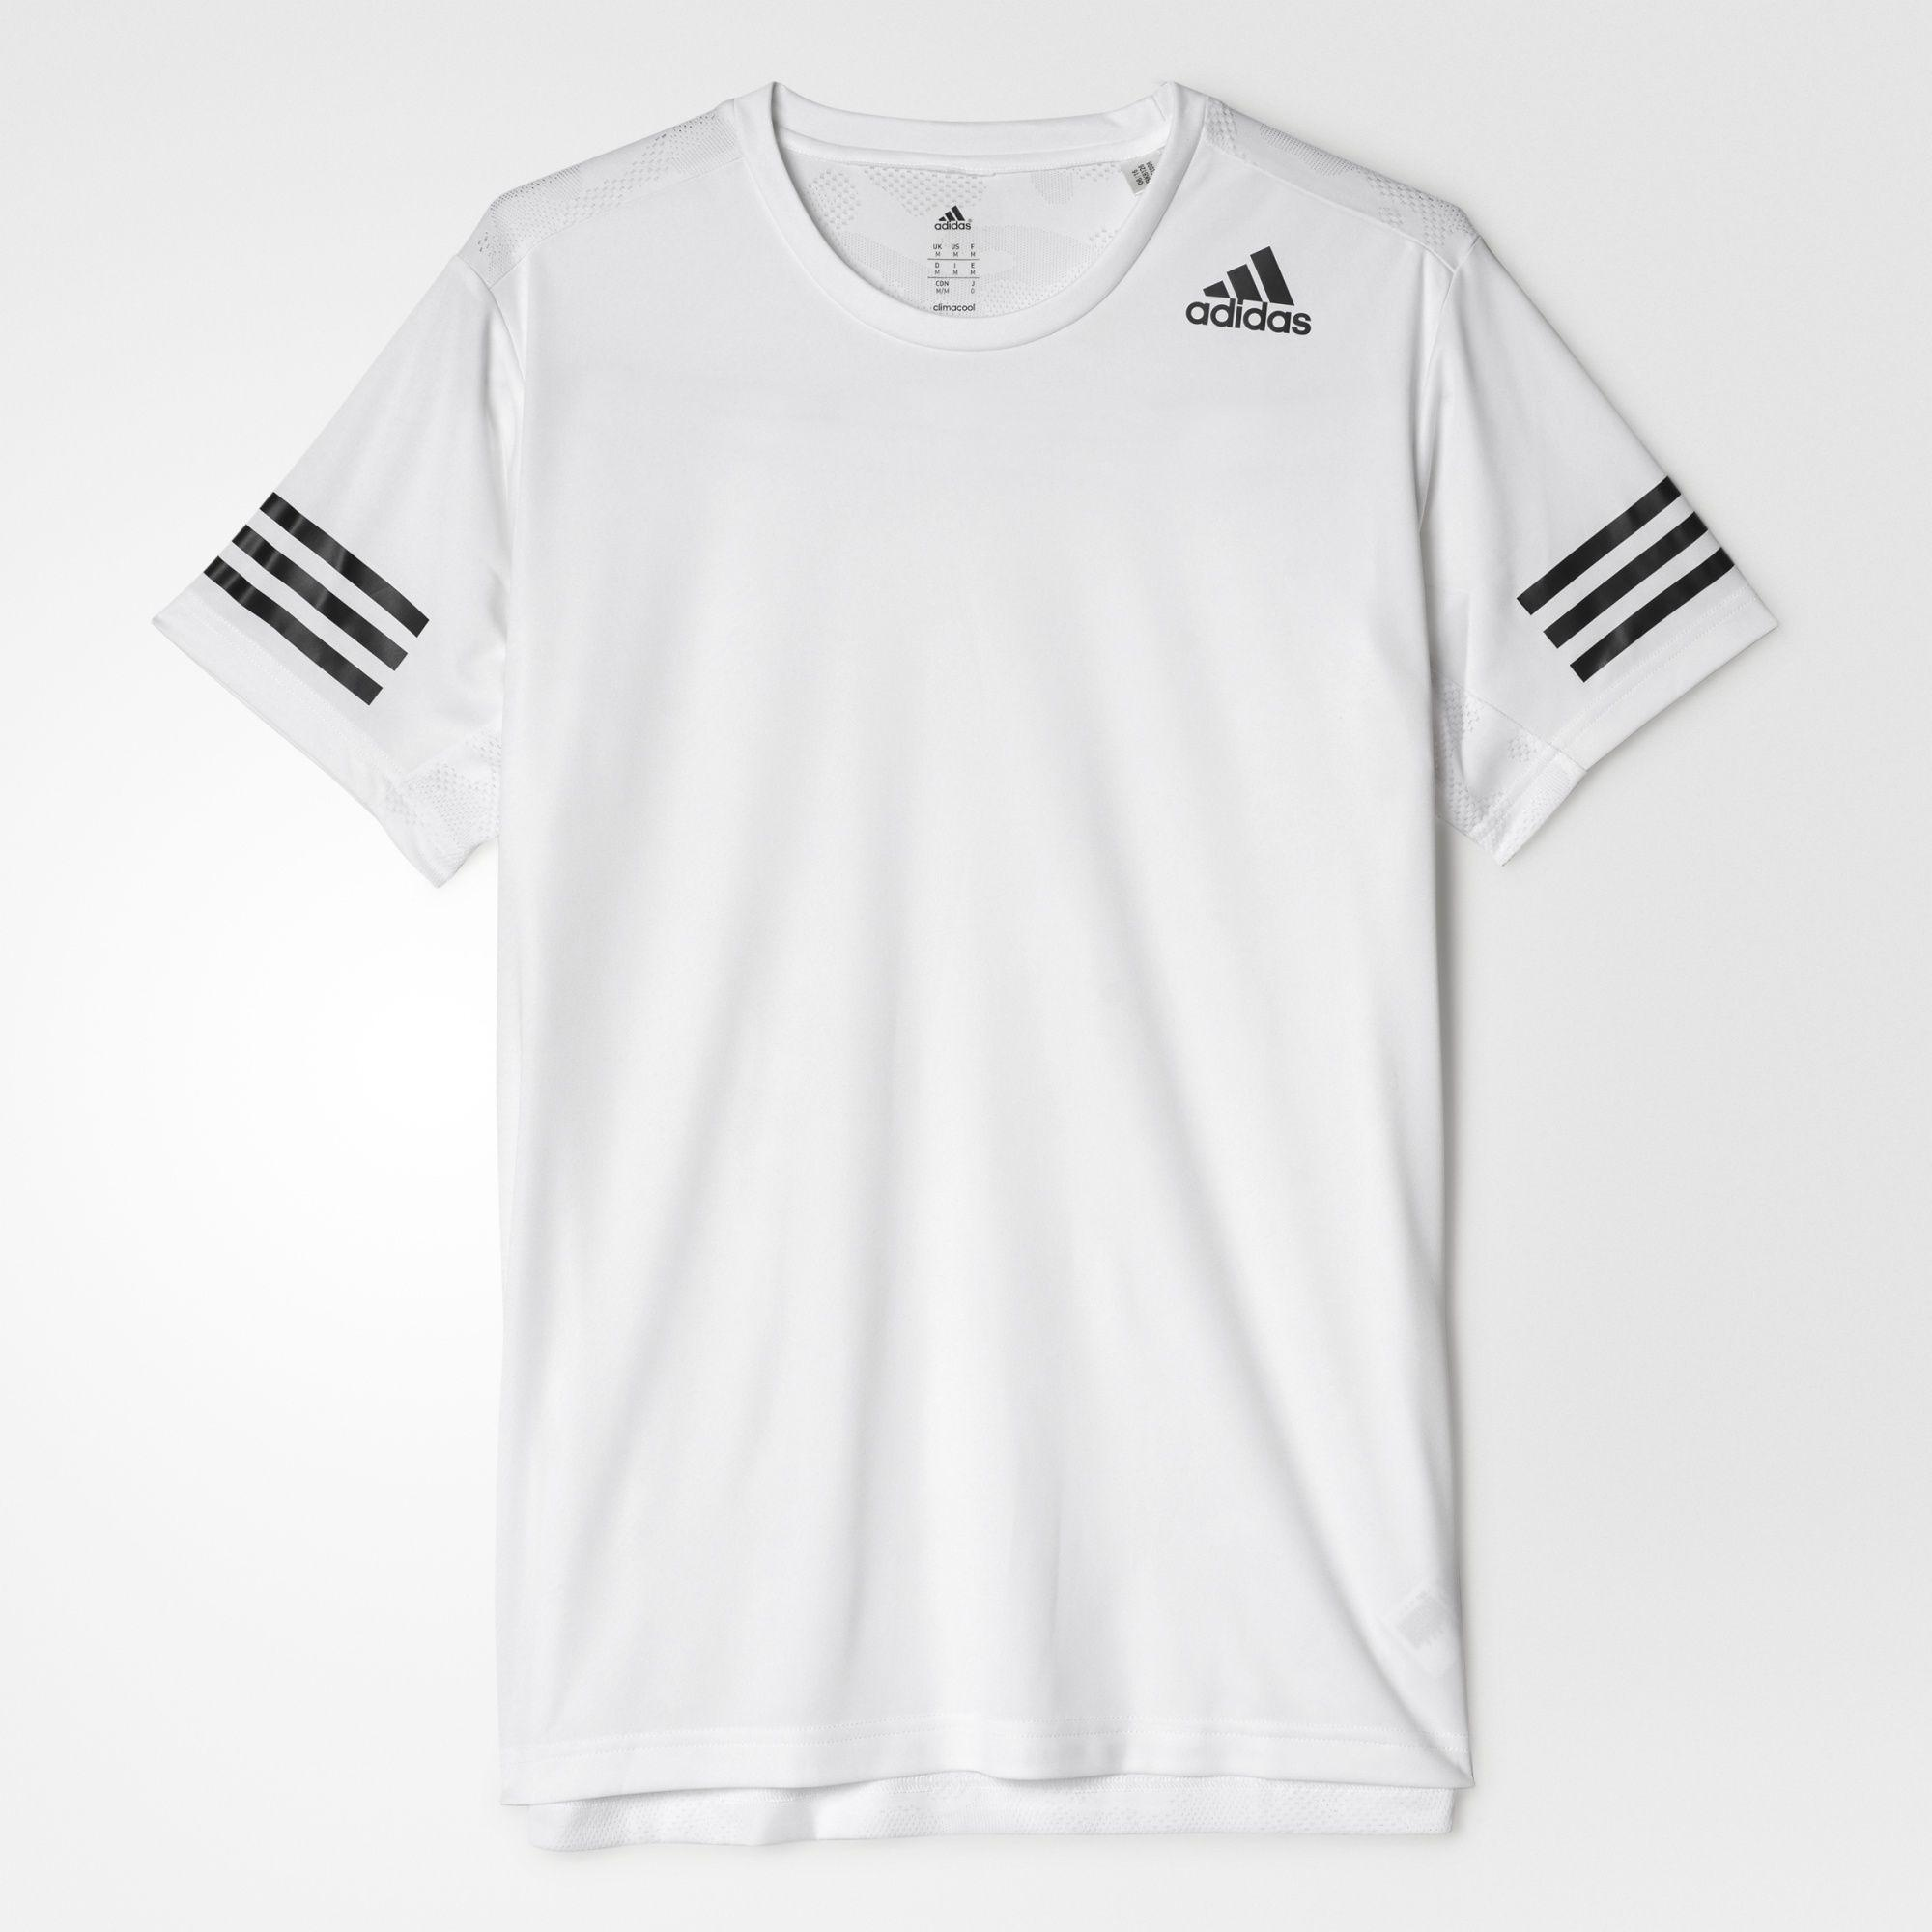 d9deb051fe09d Adidas Mens FreeLift Climacool Training Tee - White - Tennisnuts.com